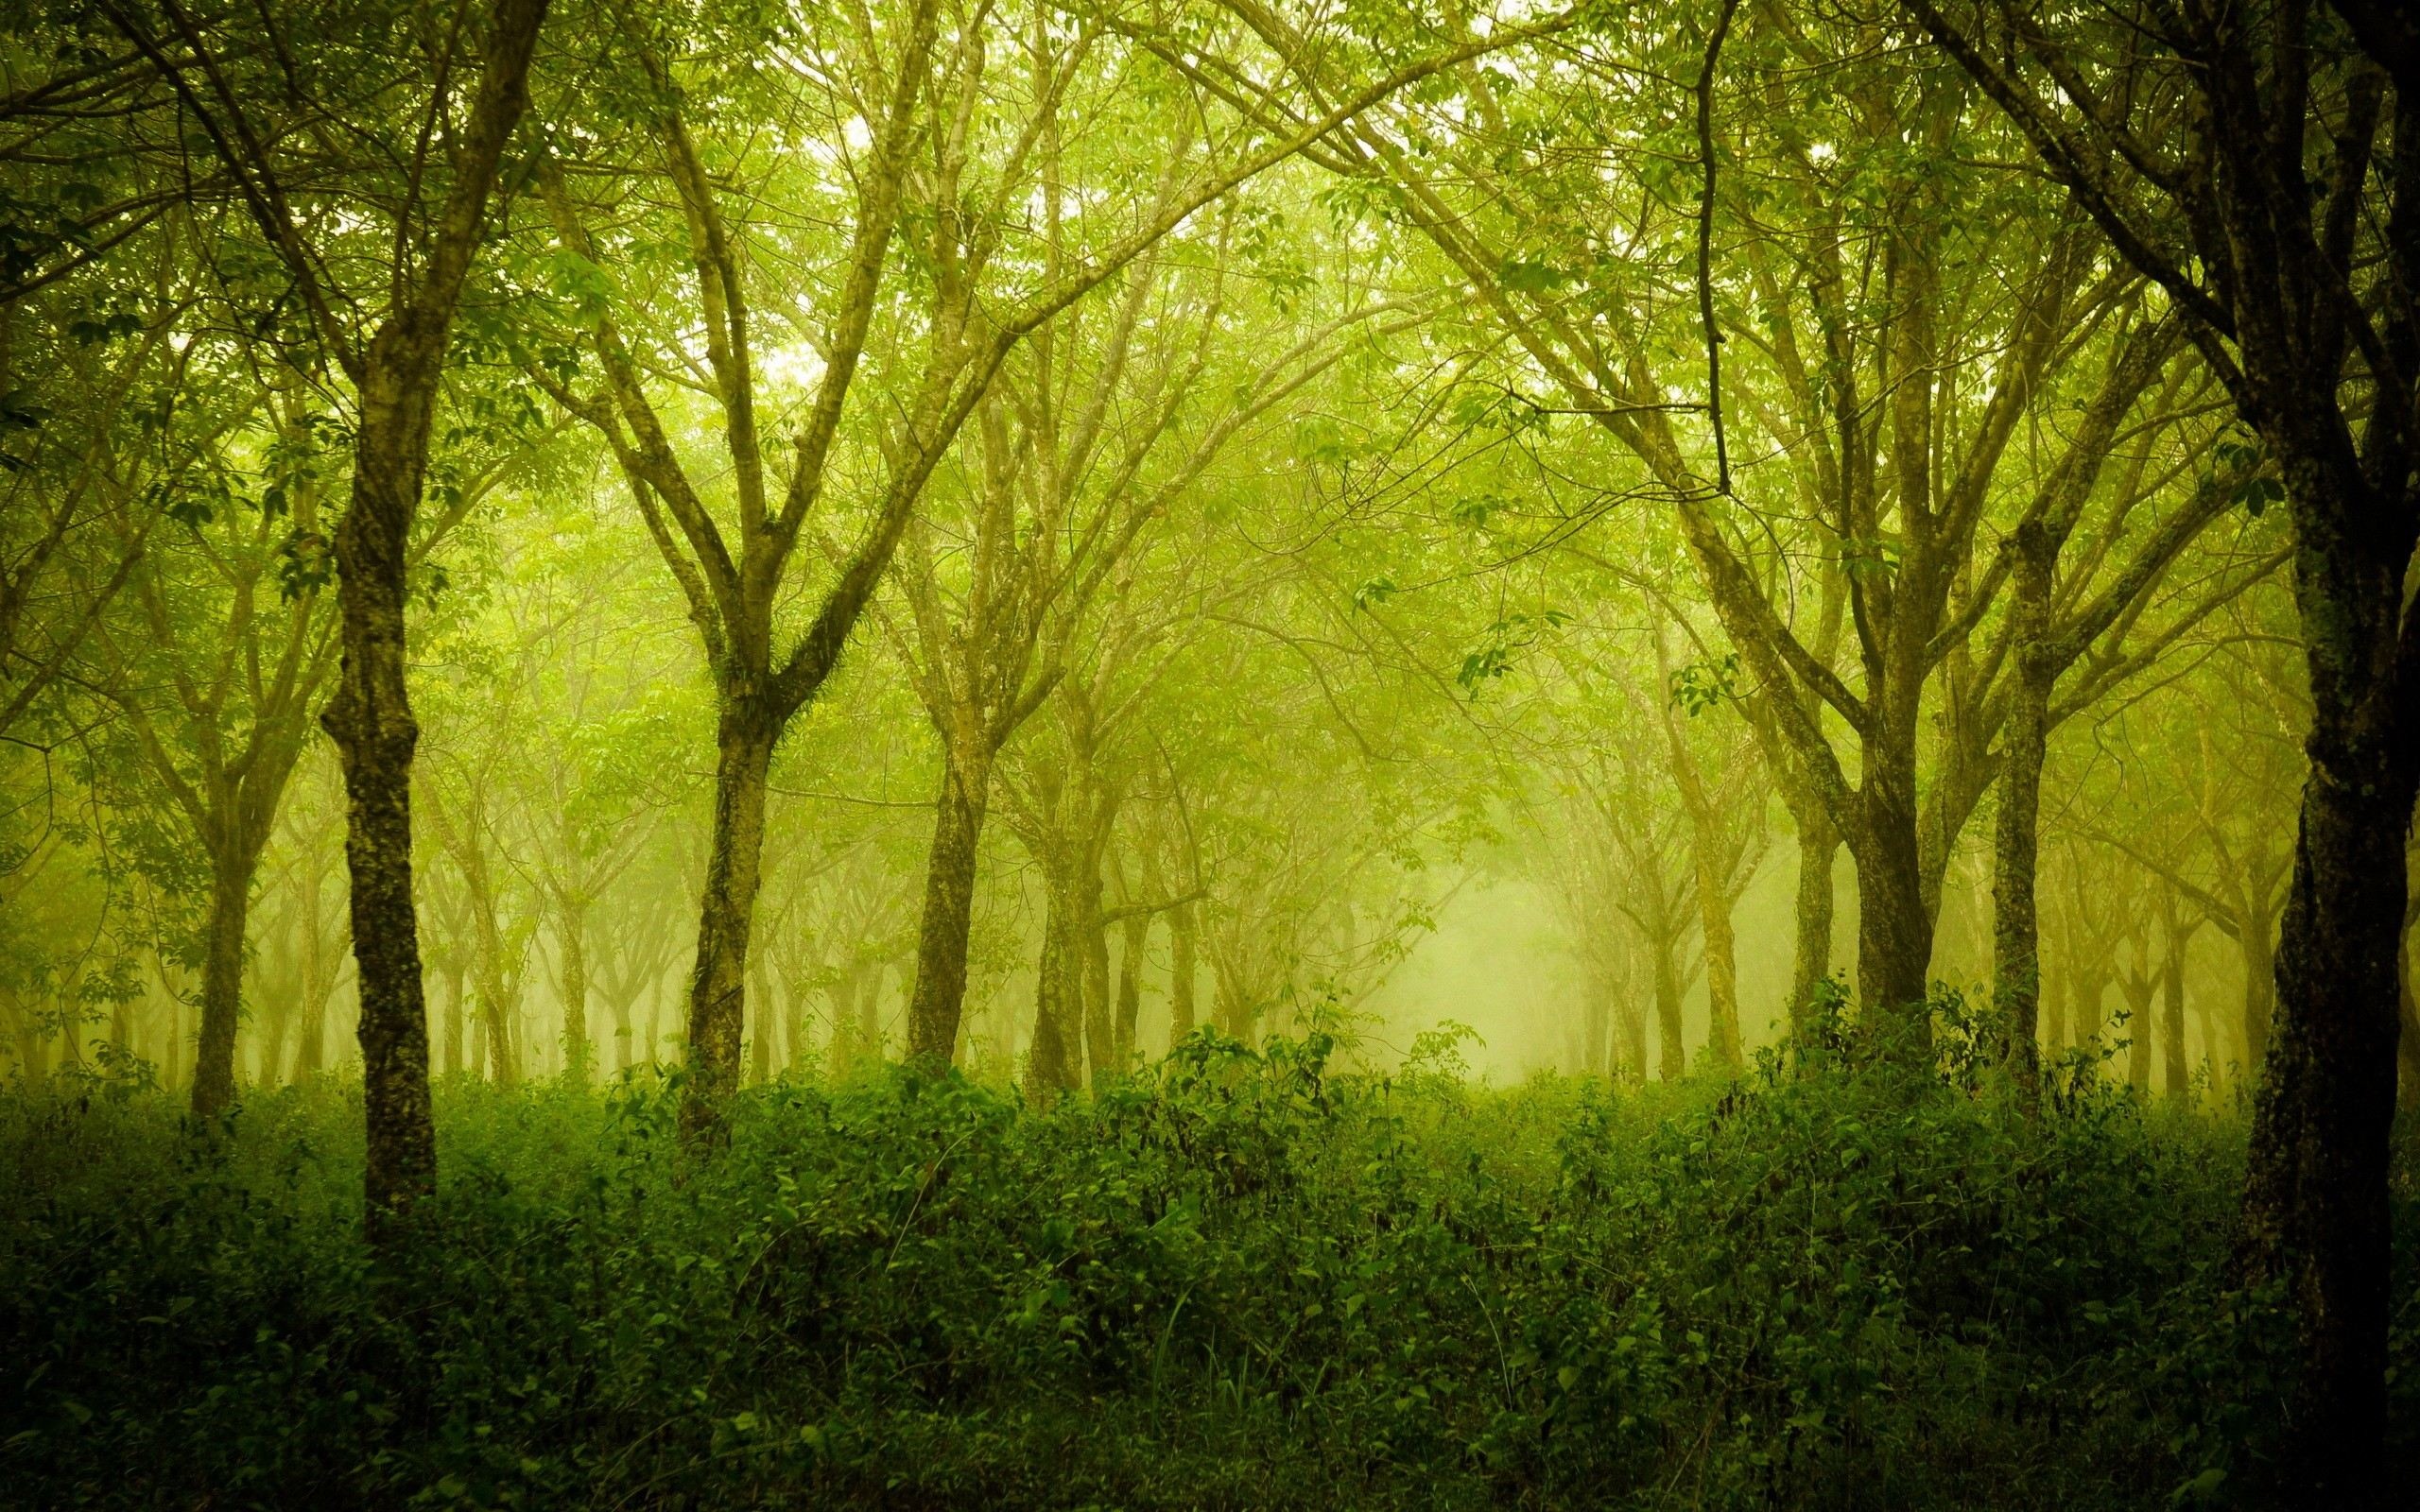 Foggy thick forest